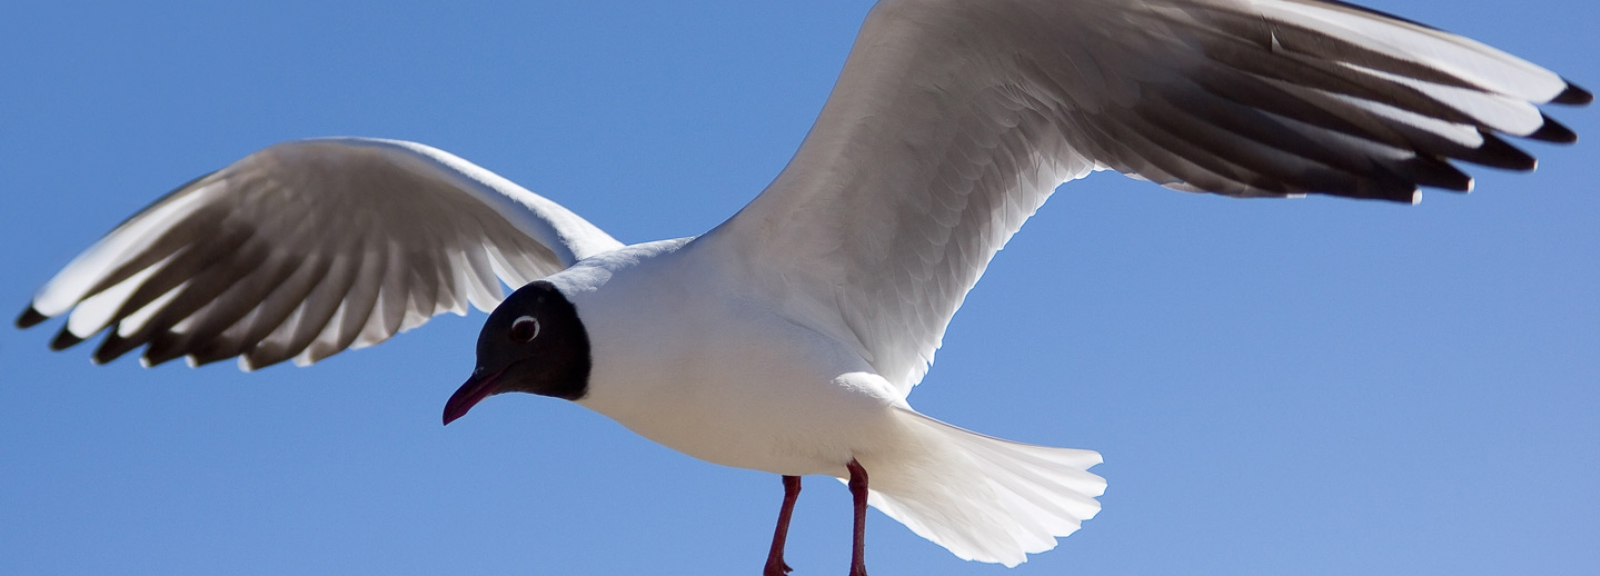 Mouette rieuse - Wikimedia commons